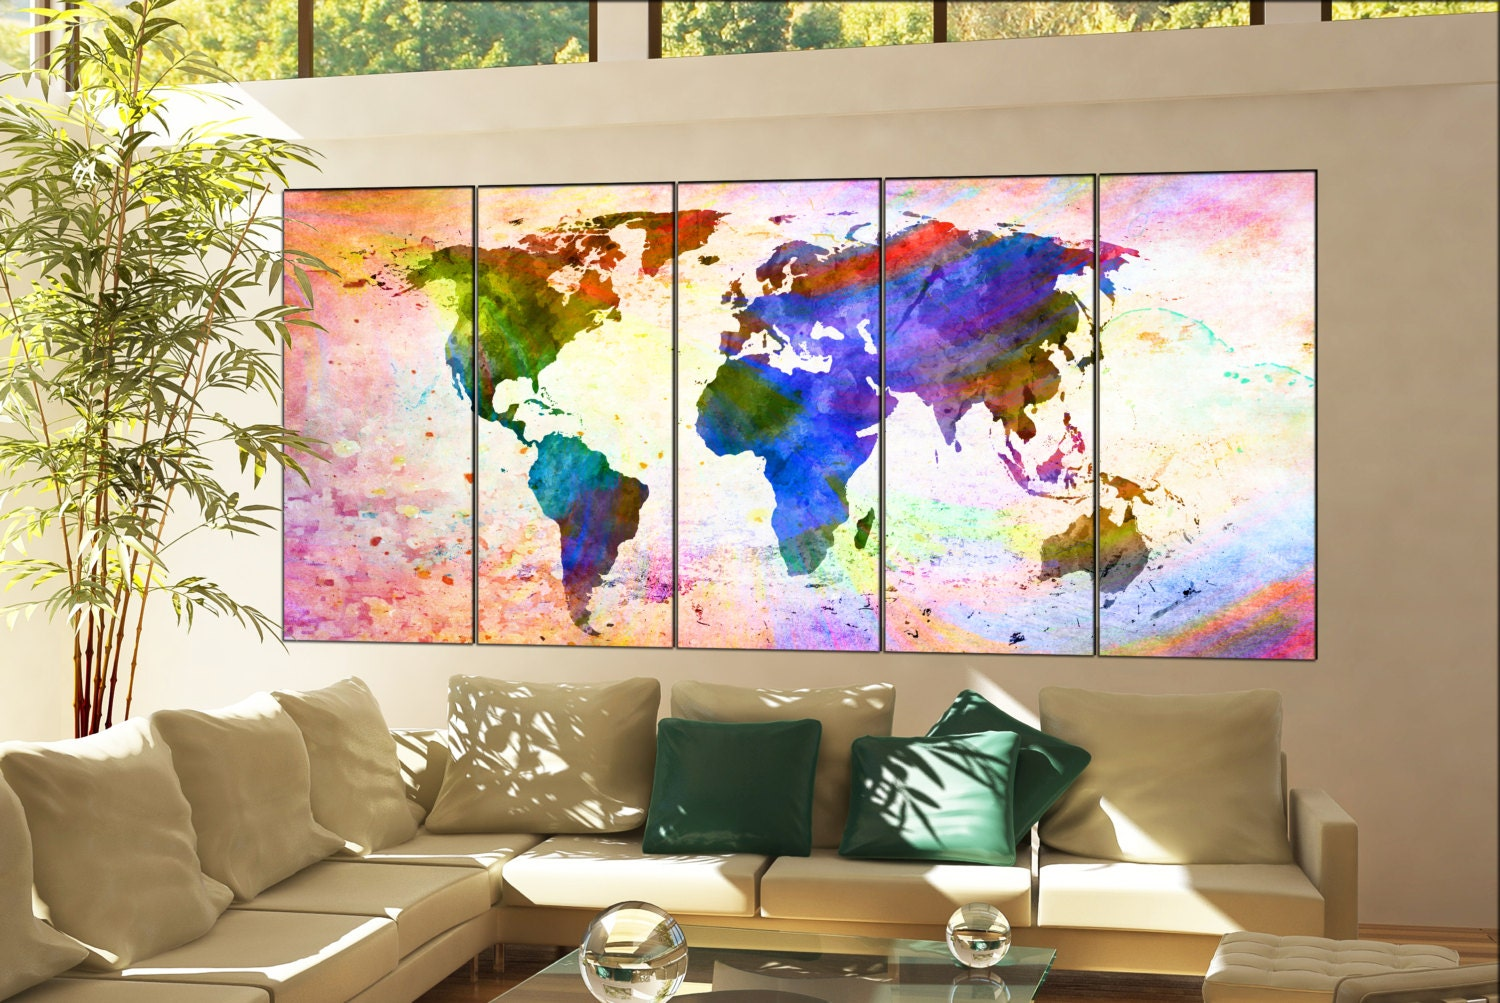 Wall art world map print on canvas wall art wall art world map print wall art world map print on canvas wall art wall art world map print decor artwork wall art world map print wall art home decoration 5 panel gumiabroncs Images